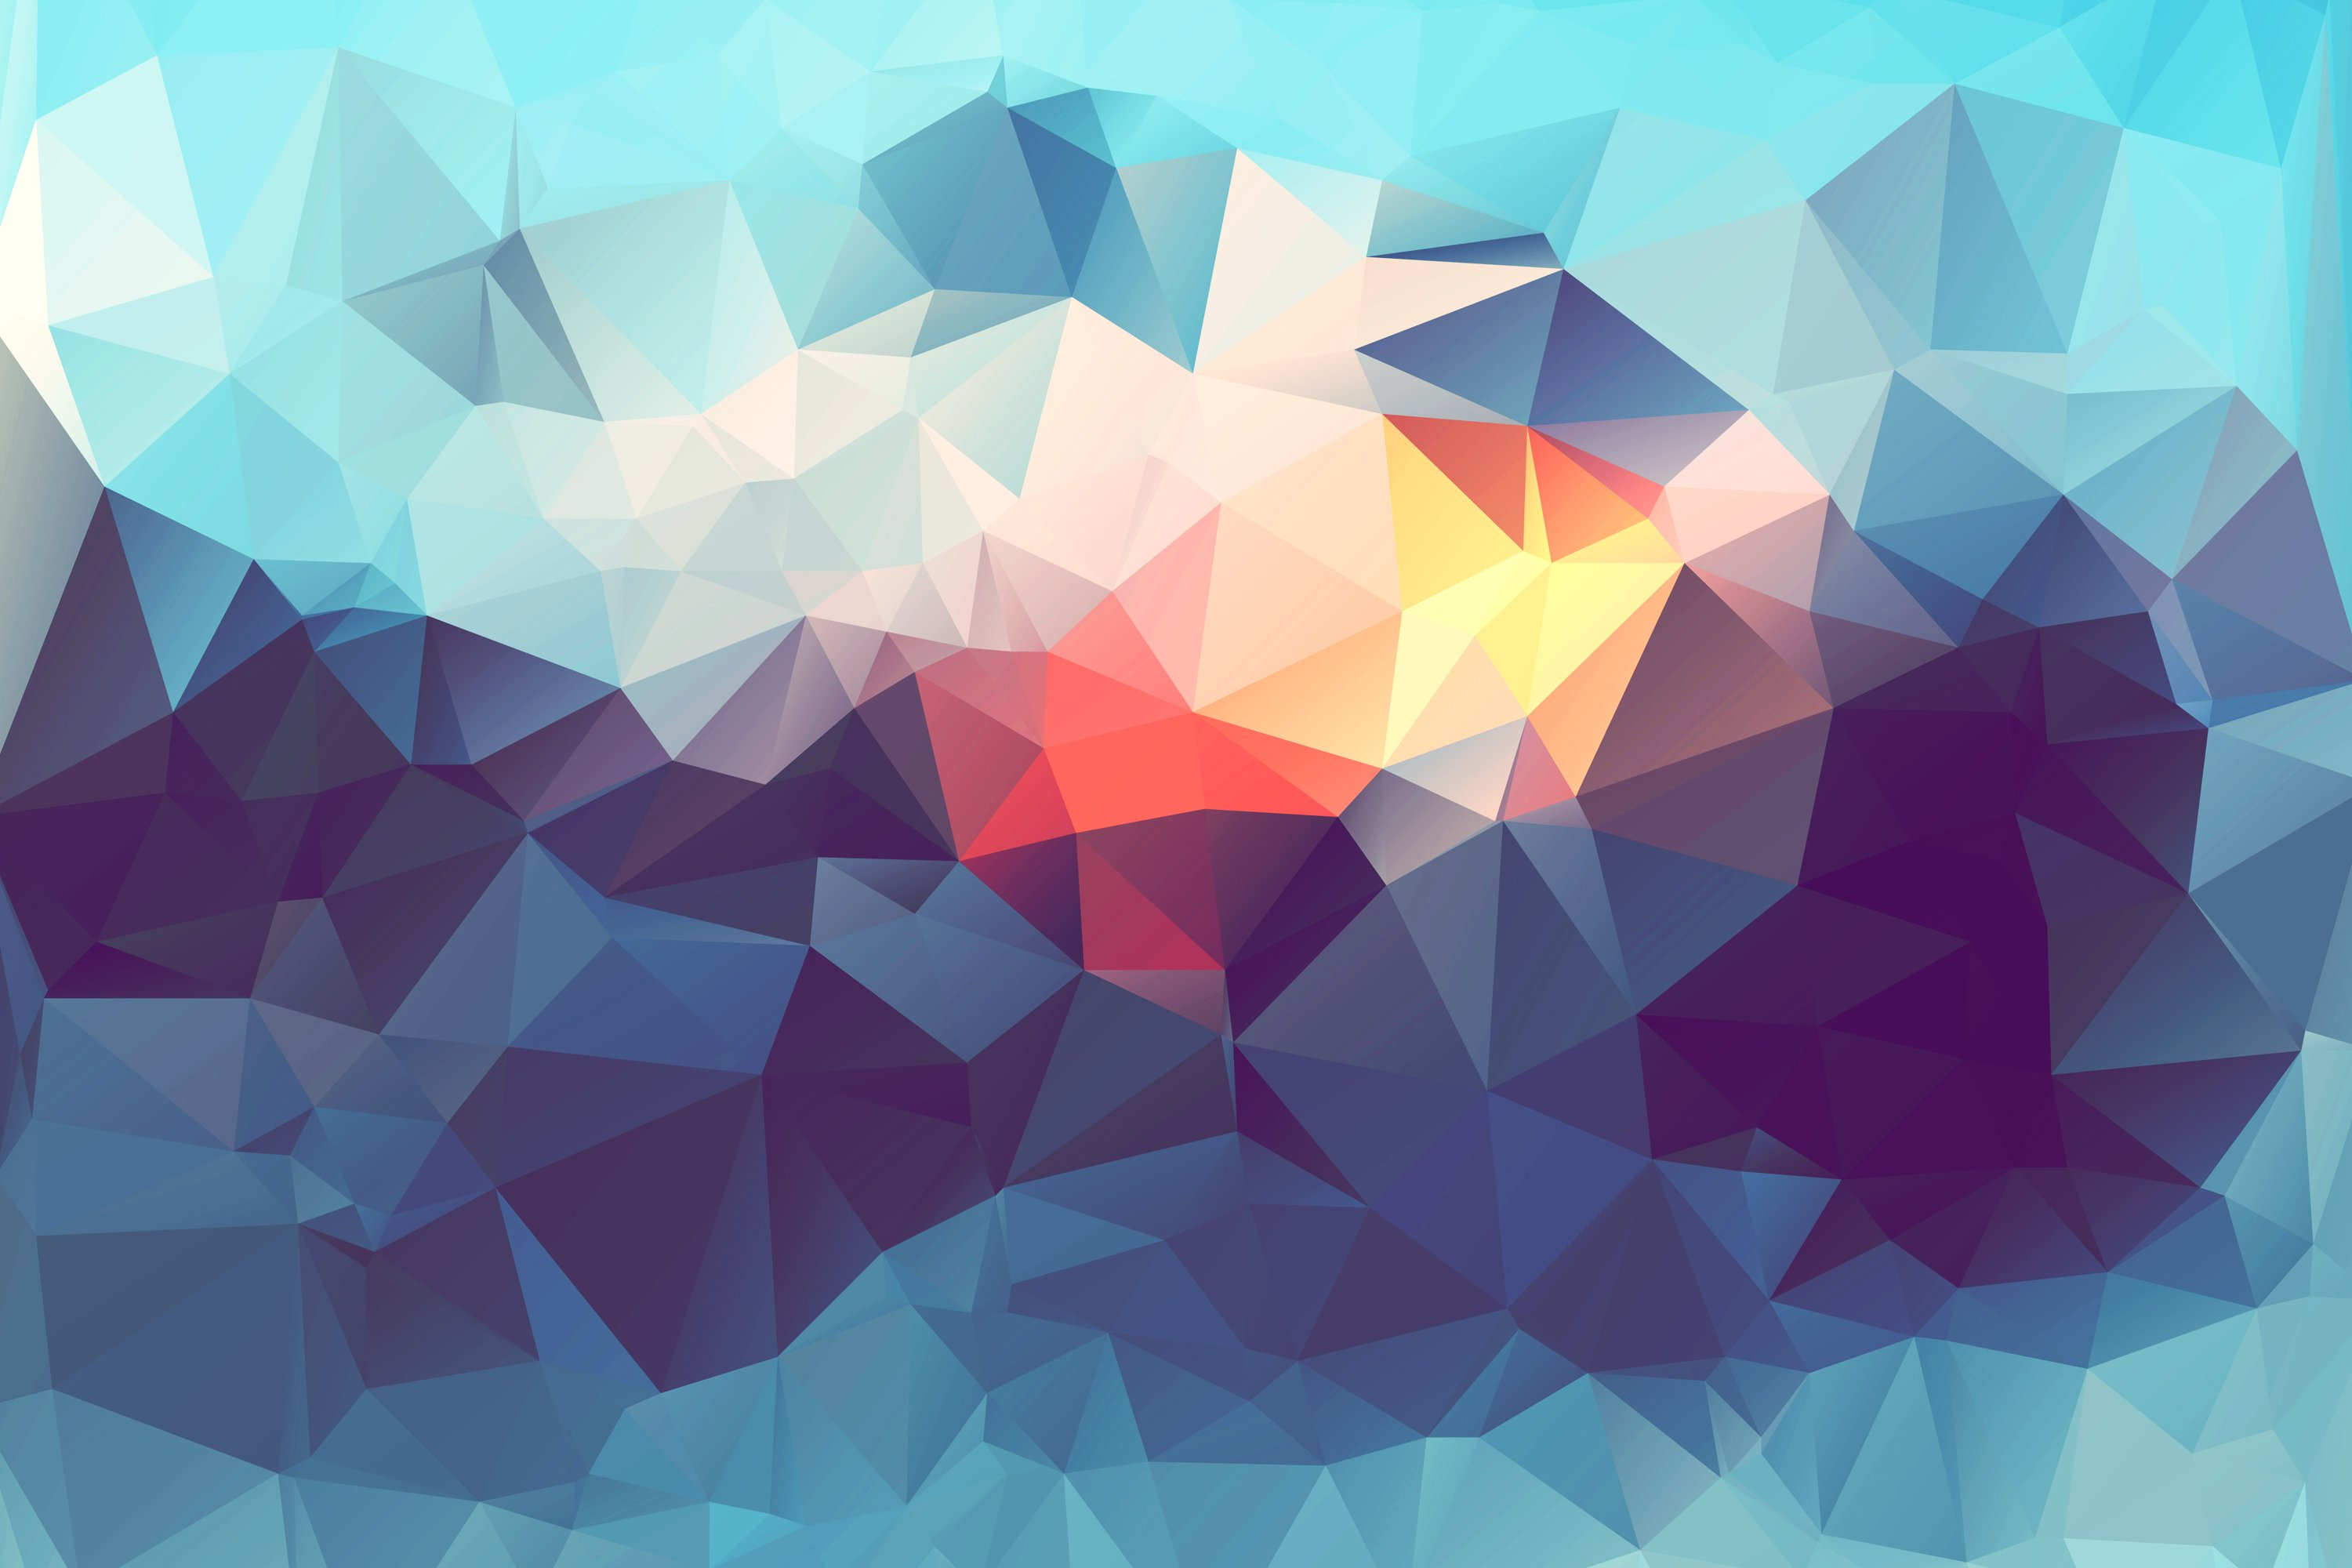 abstract low poly hd wallpaper HD Wallpapers 3000x2000